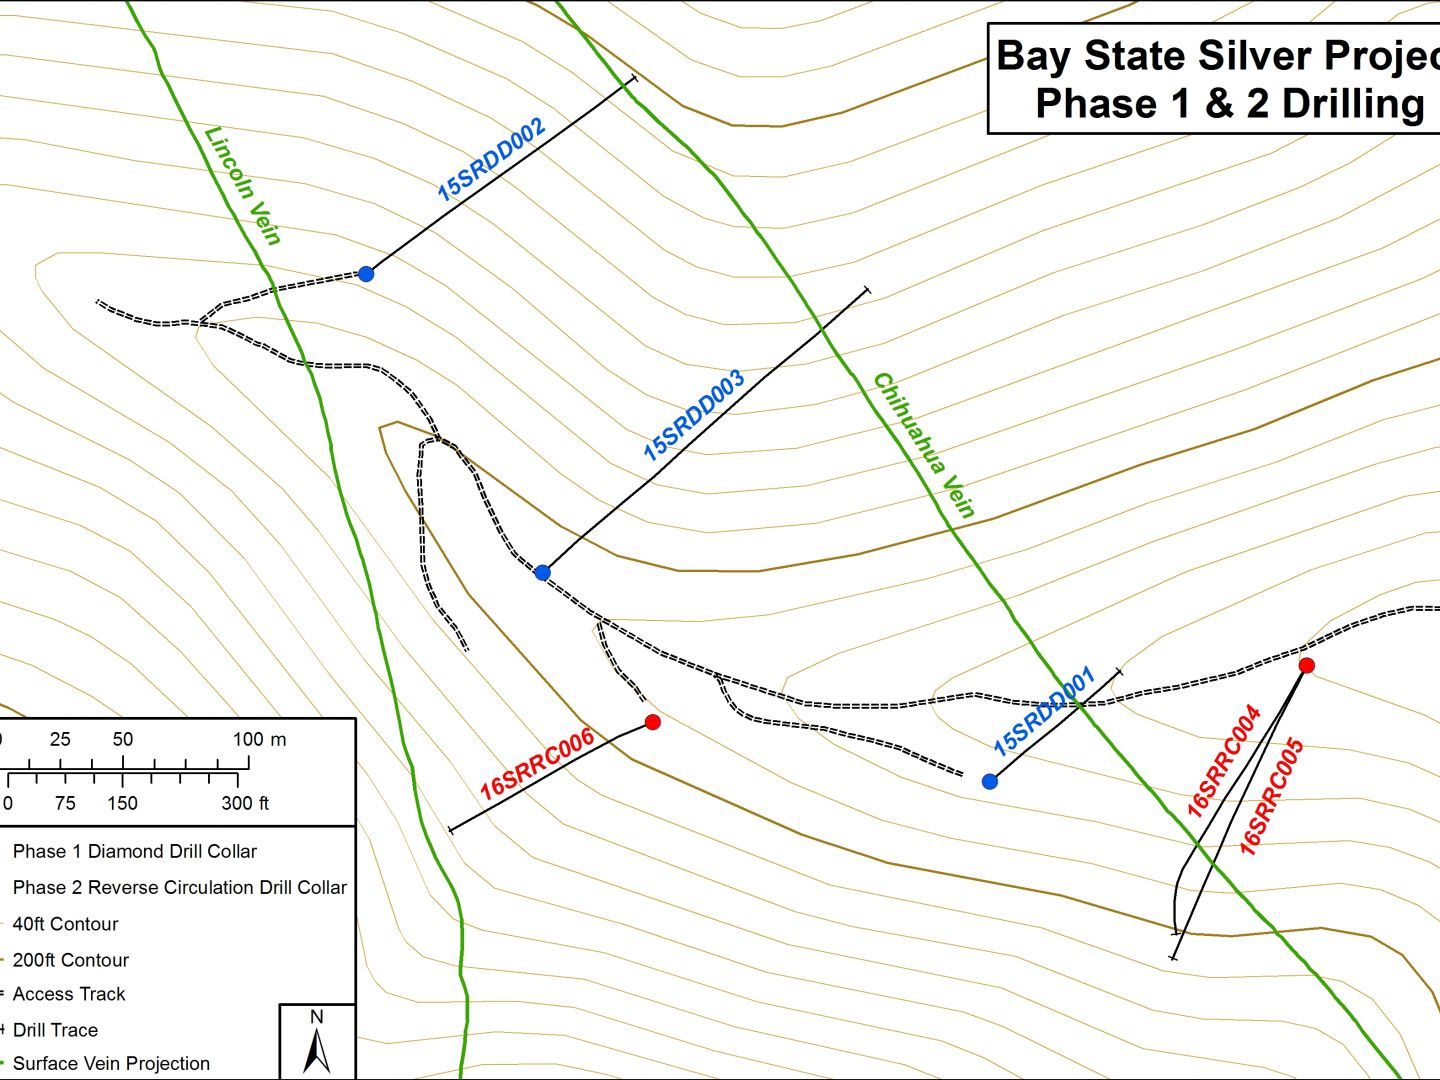 2016 Drill Plan - Bay State Silver Project